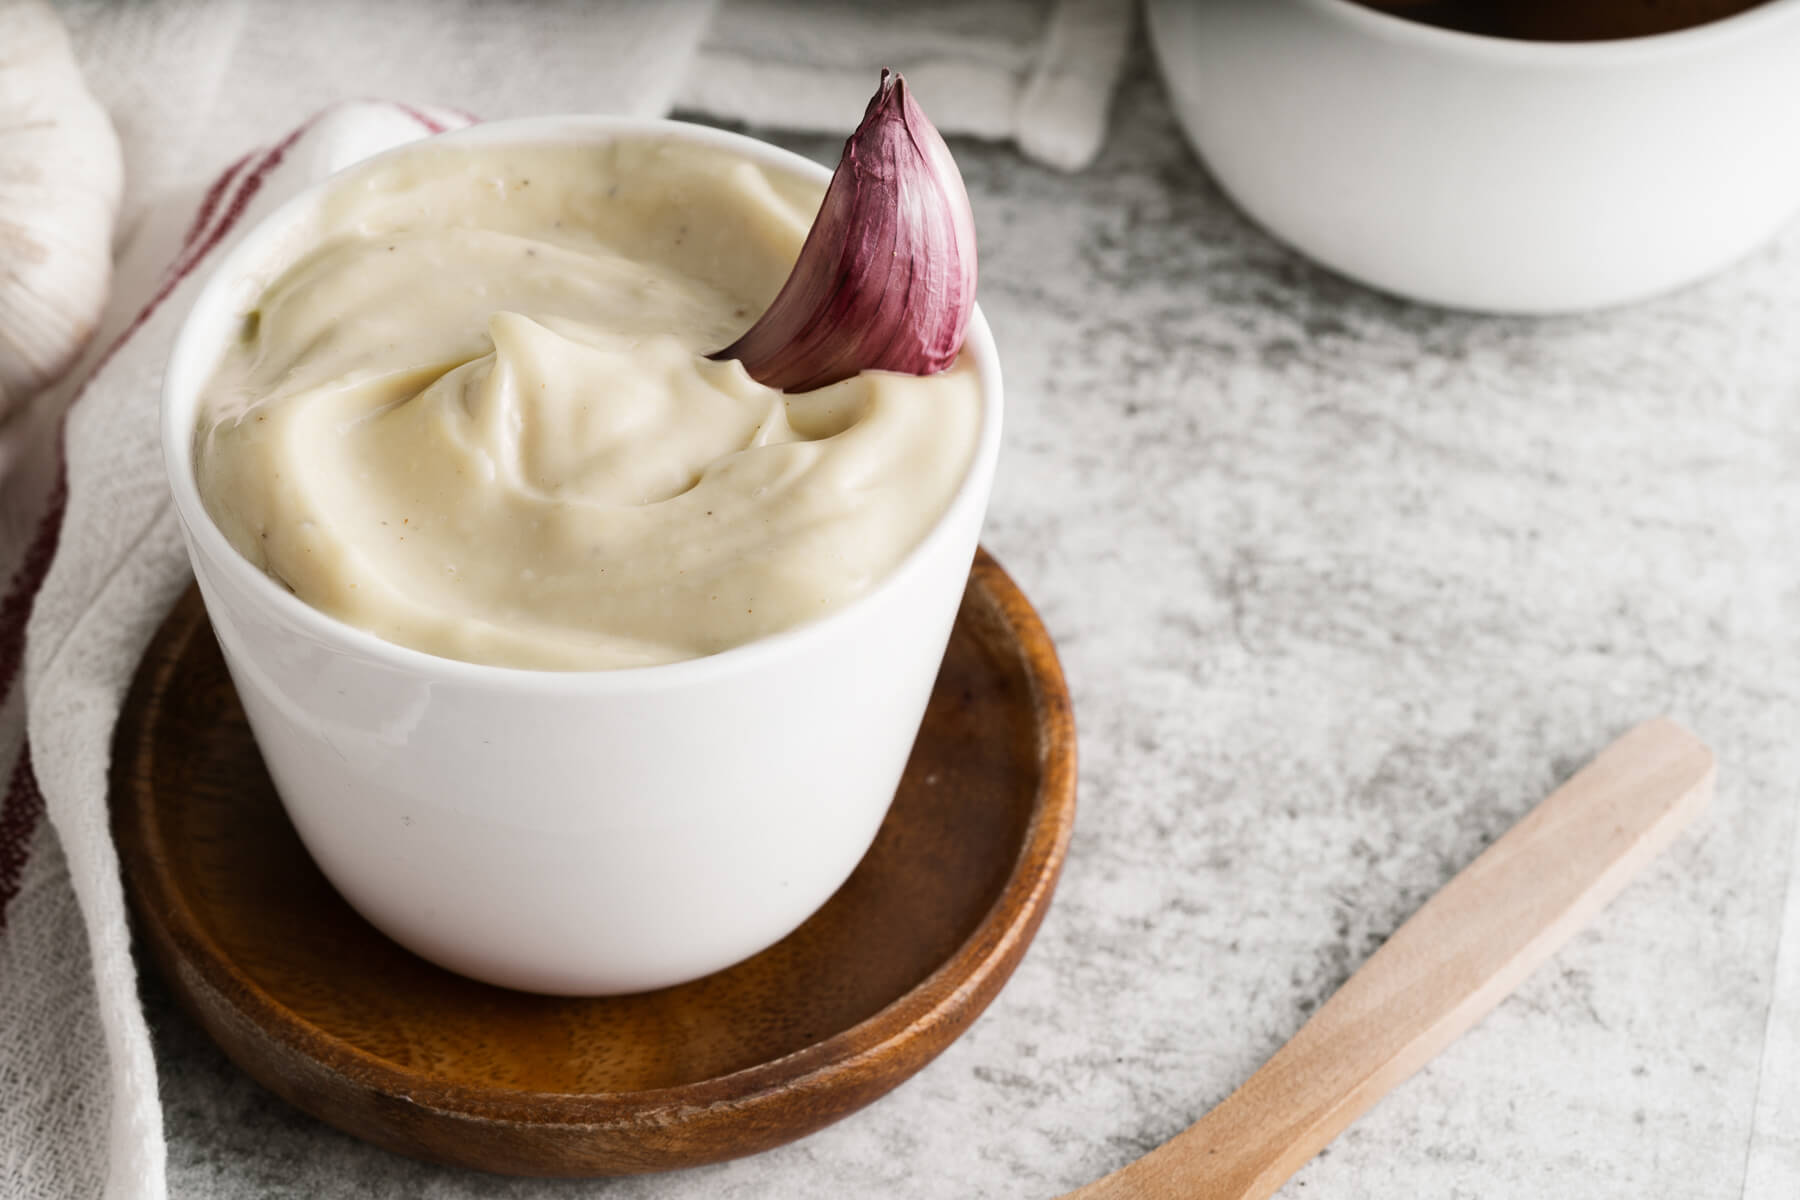 A small white dish filled with creamy Homemade Aioli garnished with a purple clove of garlic.